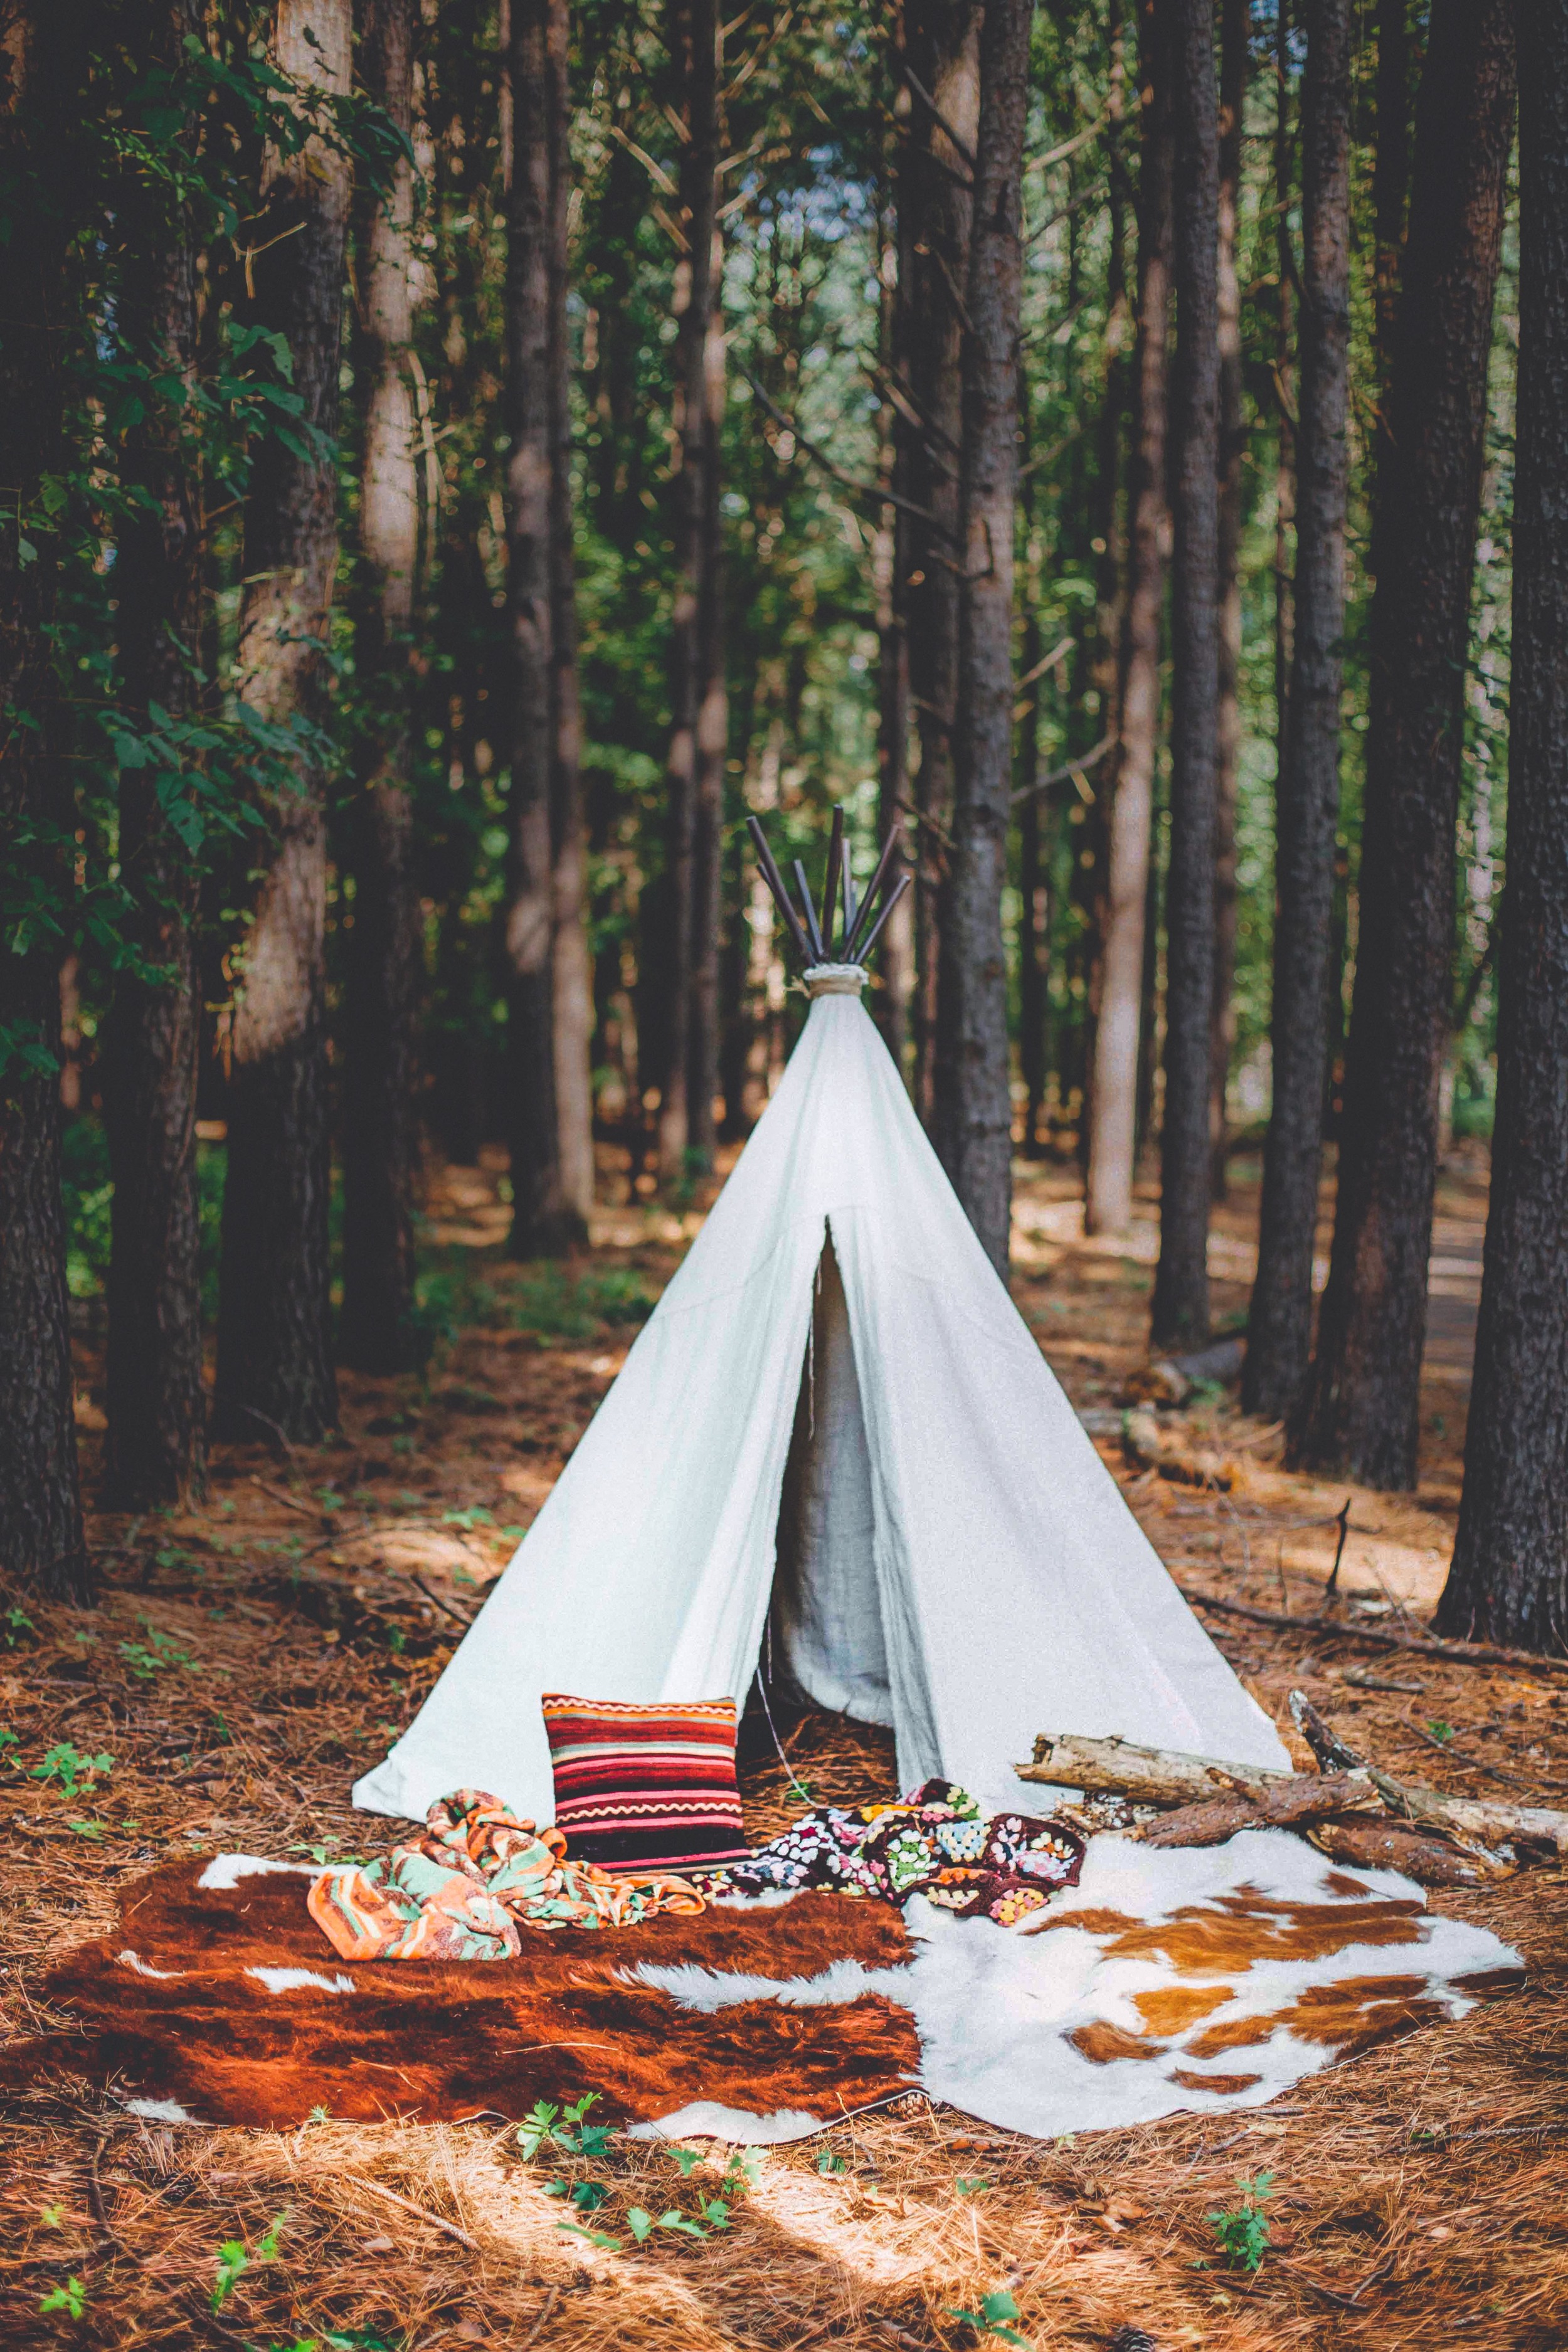 The team came prepared with a tipi, blankets and other kitschy props to our forrest location.